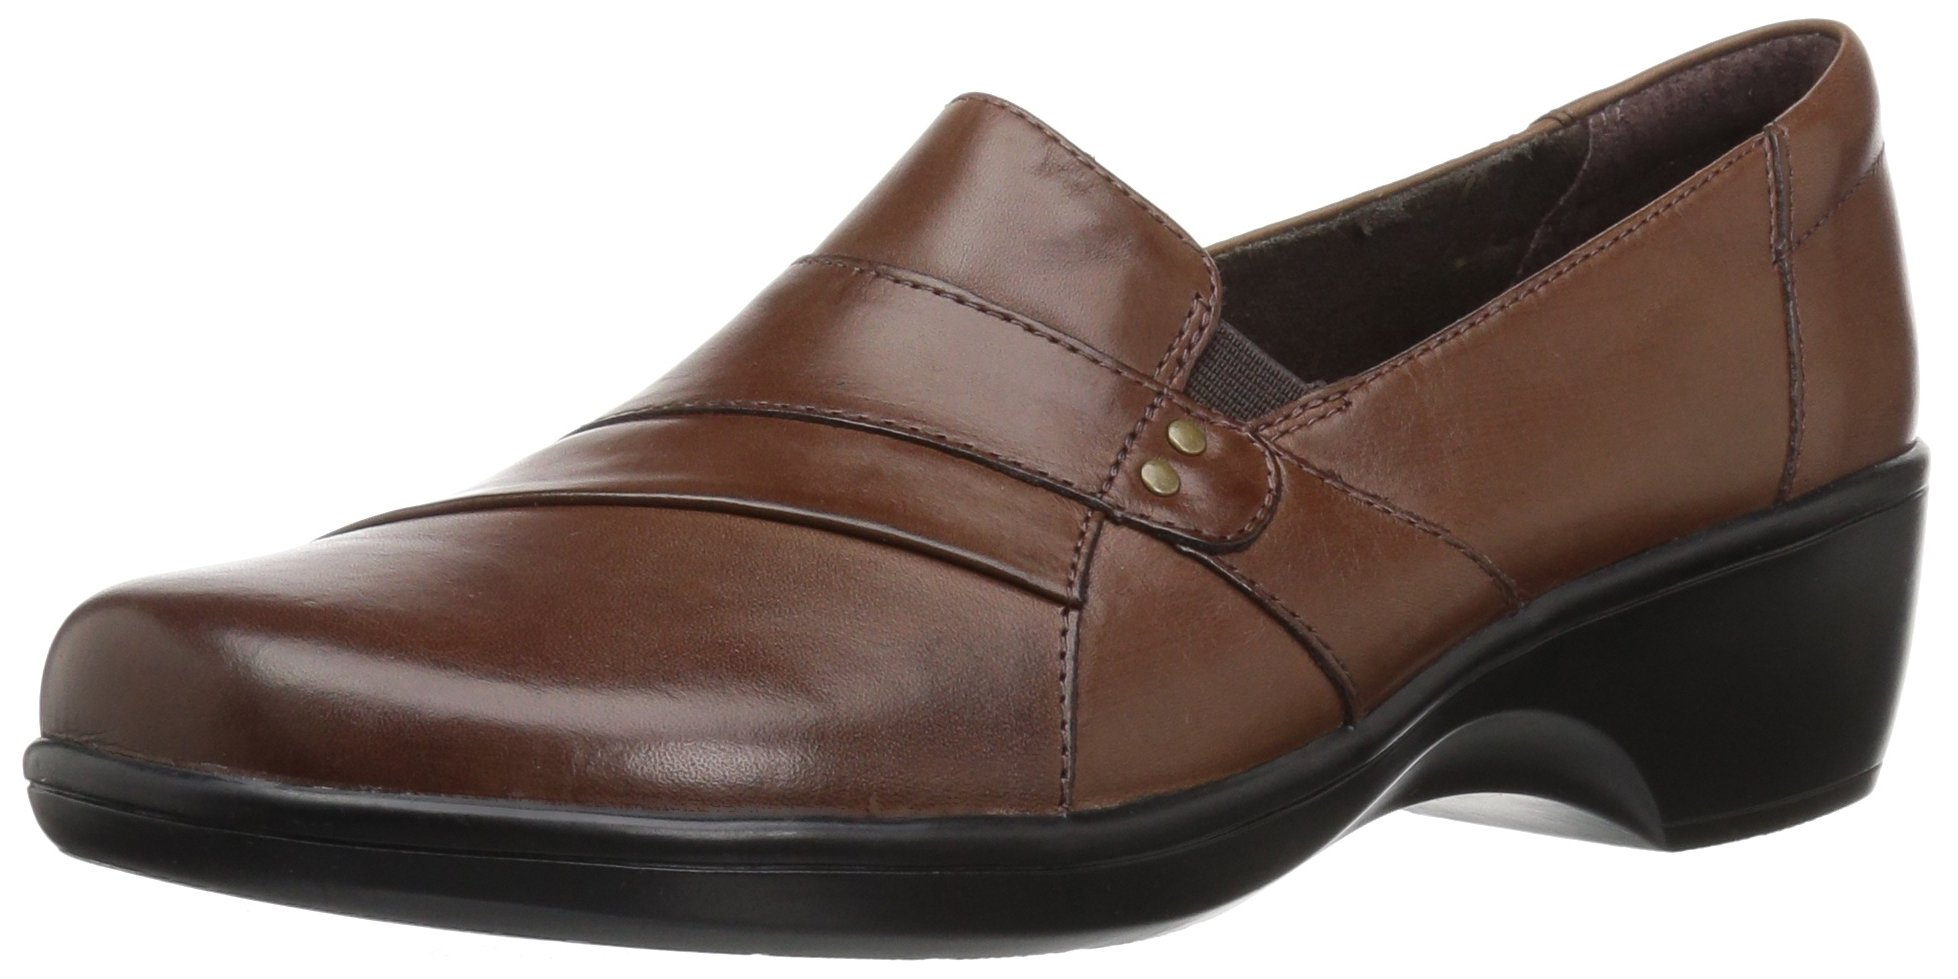 CLARKS Women's May Marigold Slip-on Loafer, Brown Smooth, 7.5 M US